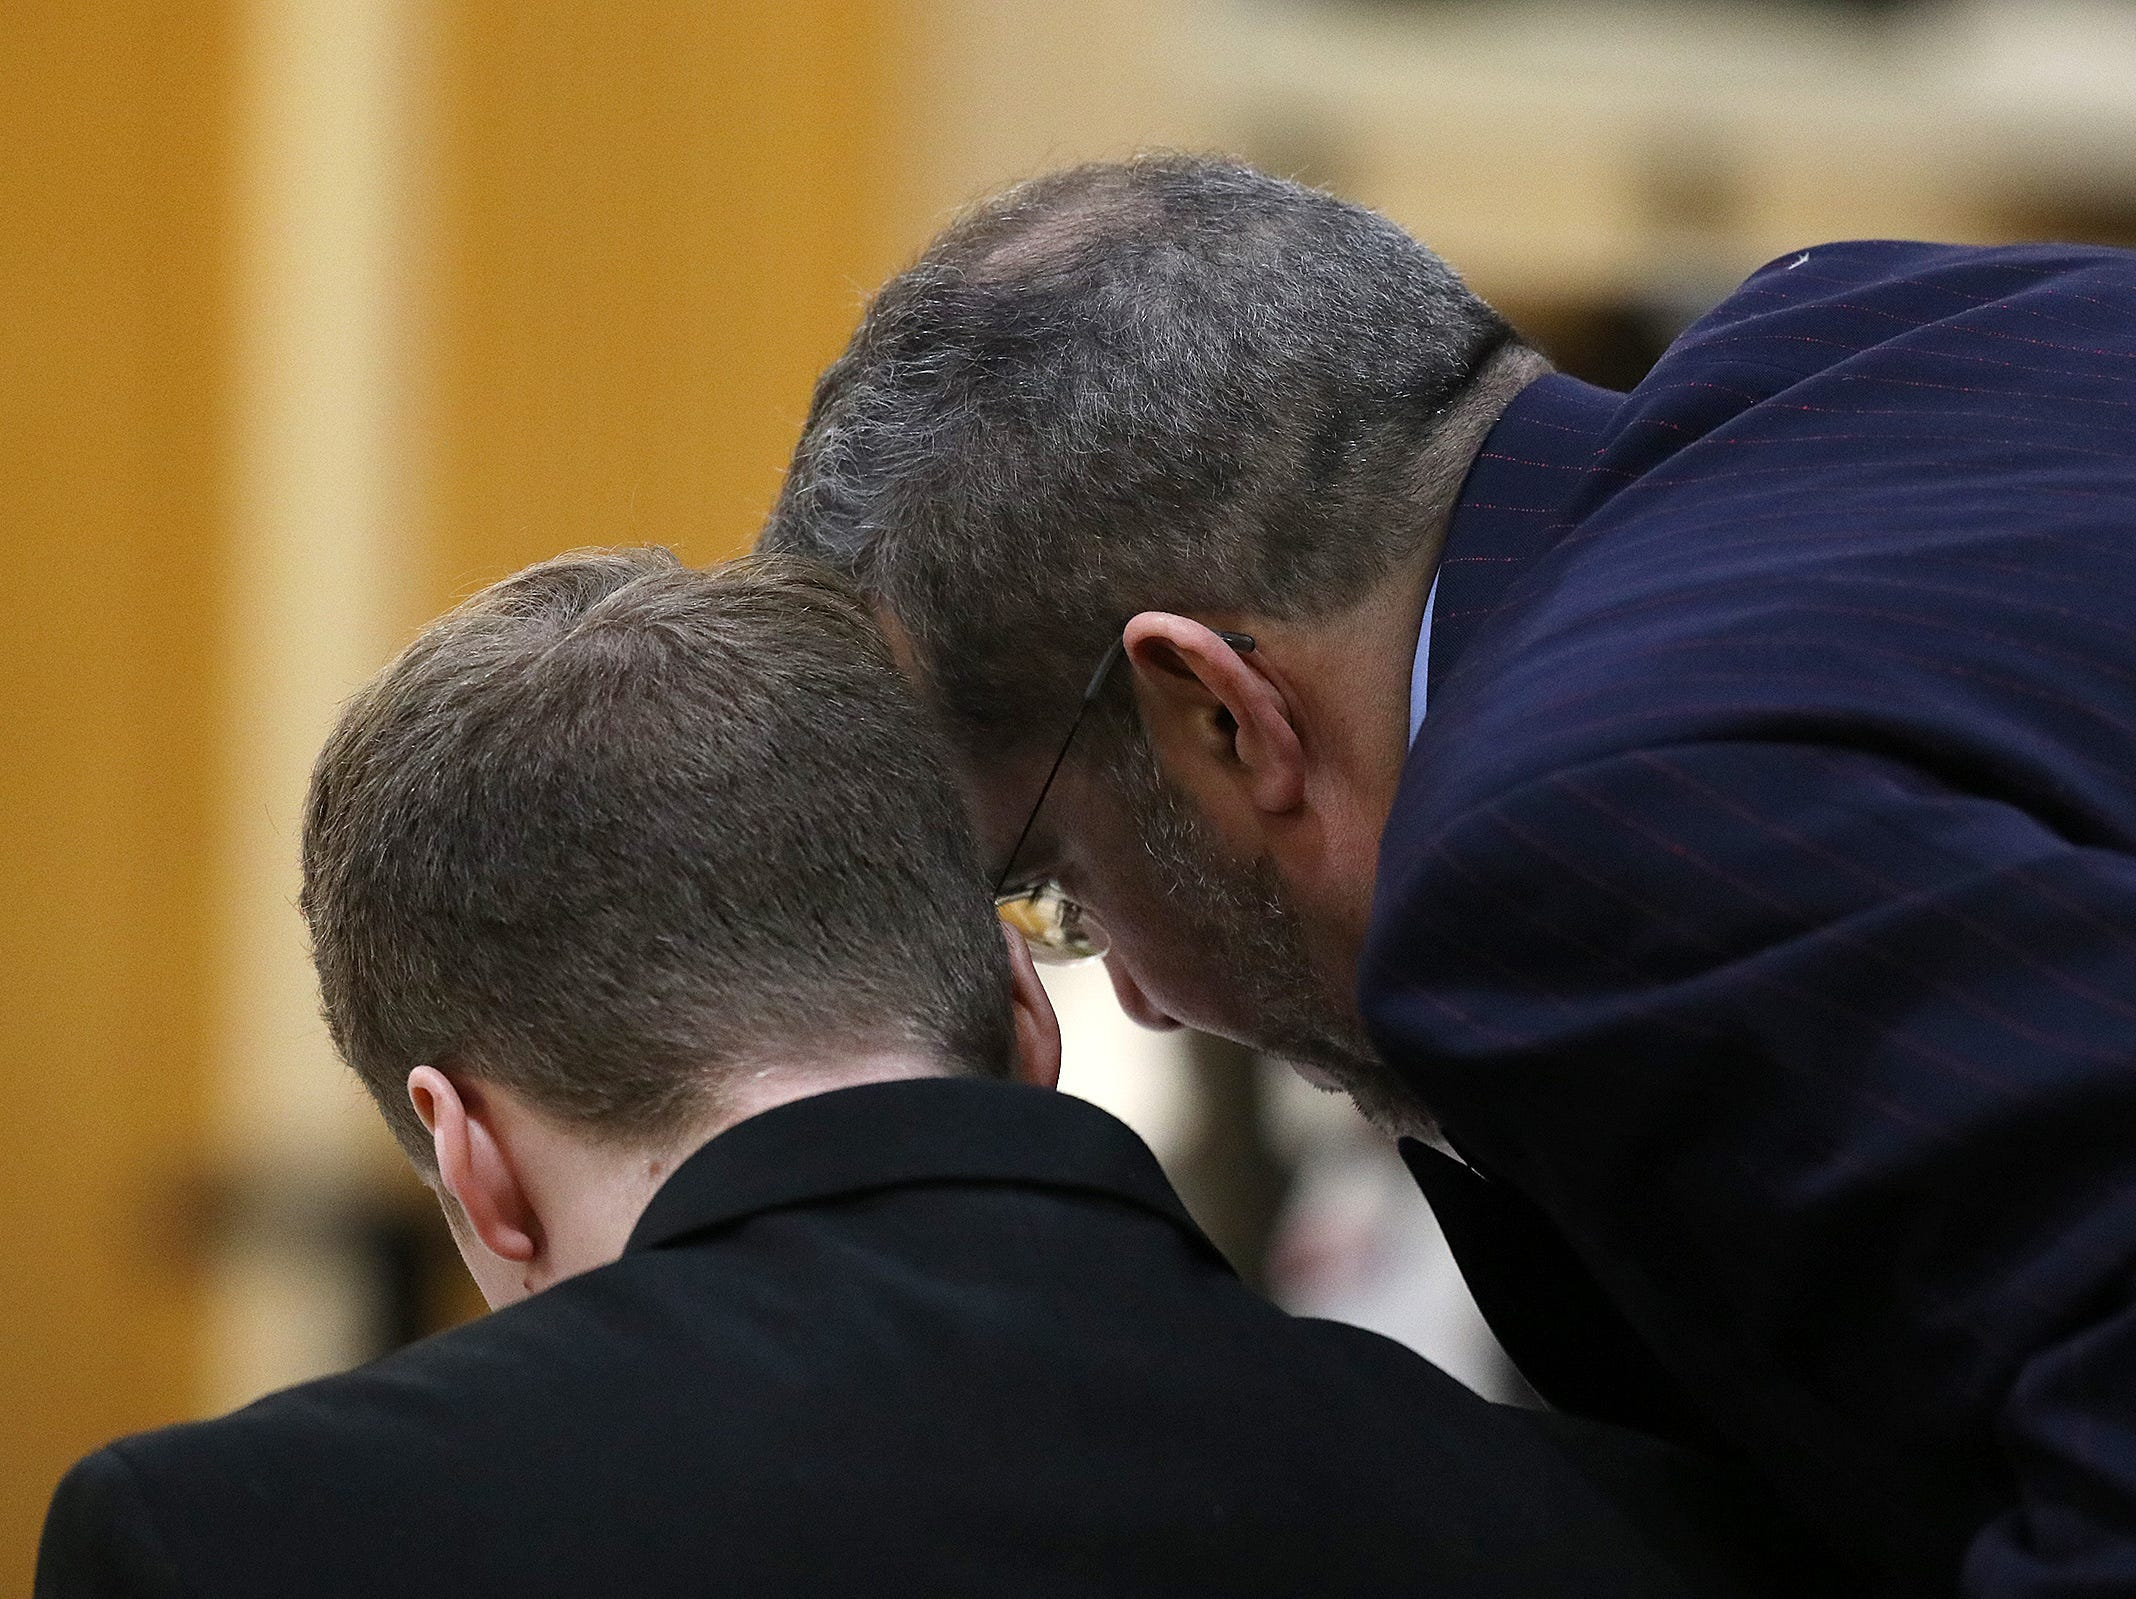 Carlos Diaz-Cobo, defense attorney, takes a moment to speak to his client as he cross examines Brian Weisbrot, a detective of the Monmouth County Prosecutor's Office, during the trial of Liam McAtasney, who is charged with the murder of former high school classmate, Sarah Stern, before Superior Court Judge Richard W. English at the Monmouth County Courthouse in Freehold, NJ Wednesday, February 20, 2019.